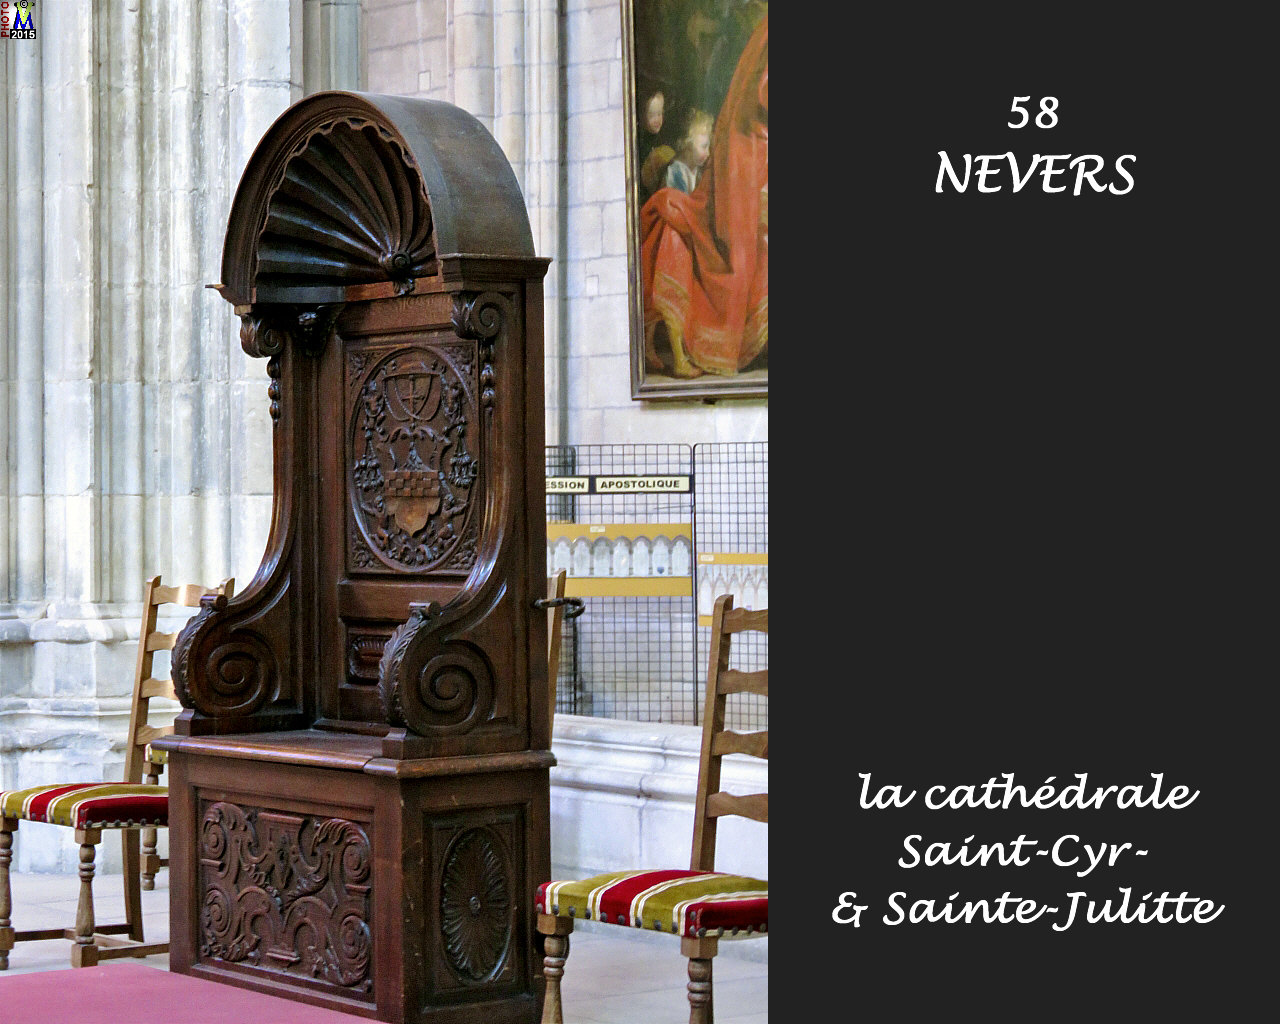 58NEVERS-cathedrale_264.jpg